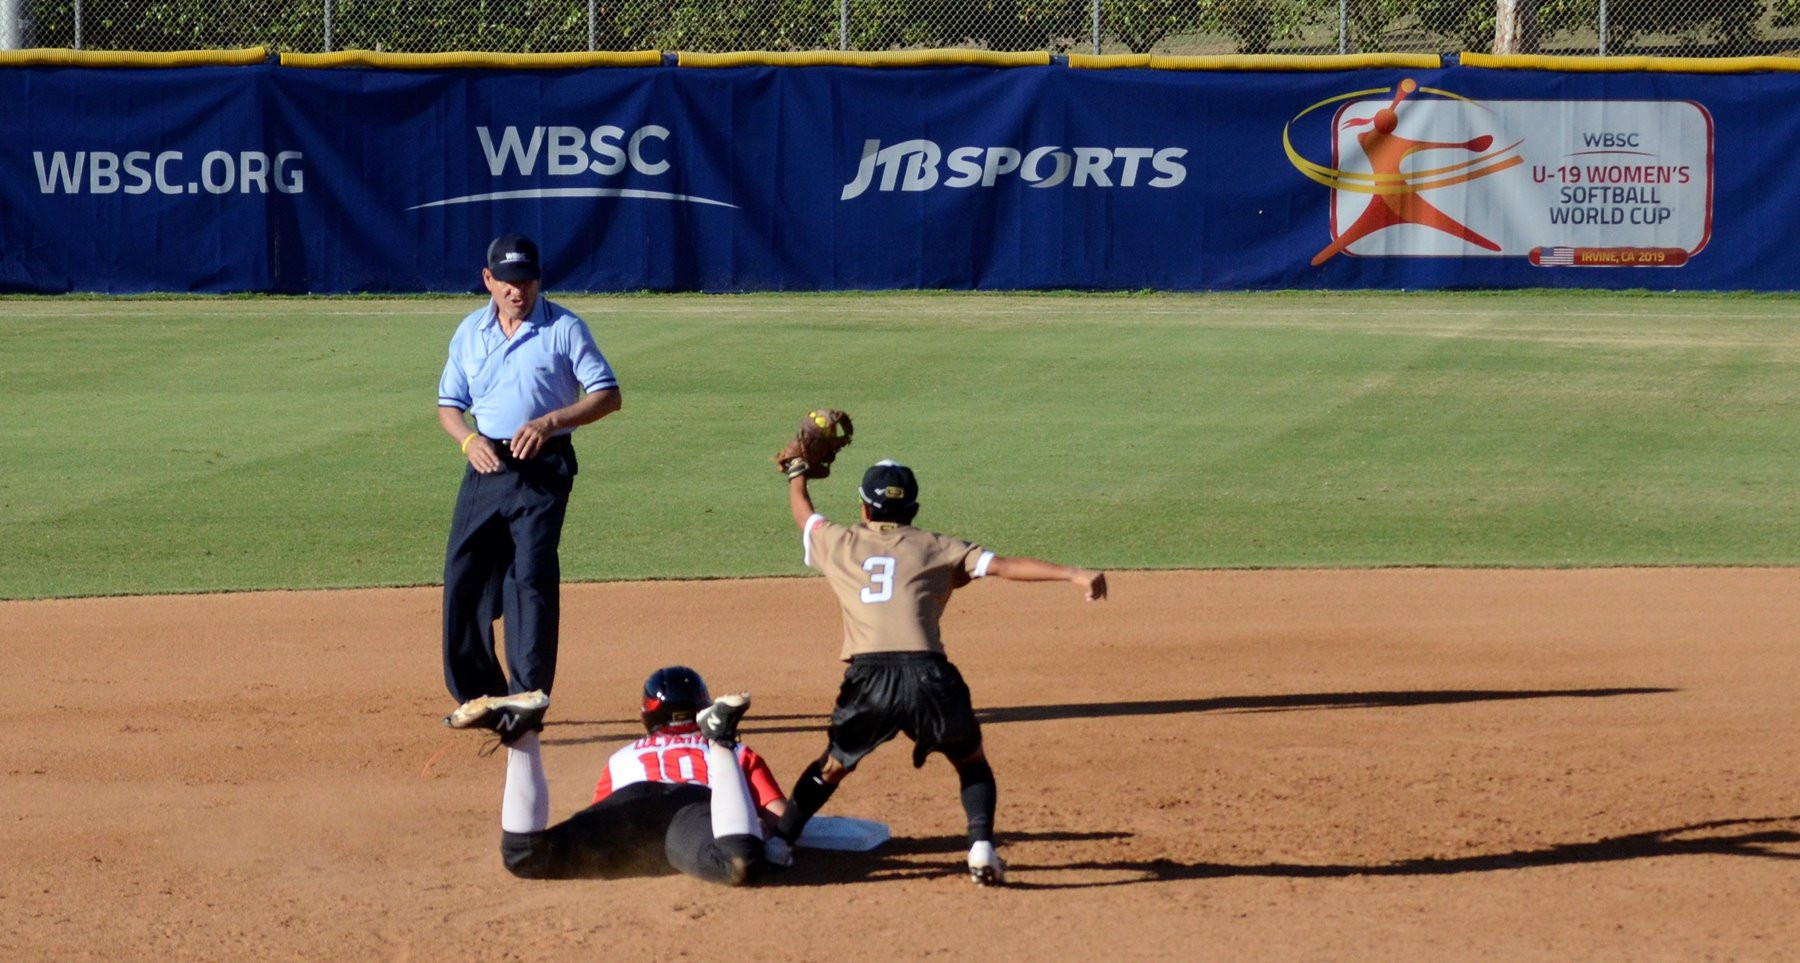 Japan on brink of reaching final at WBSC Under-19 Women's Softball World Cup